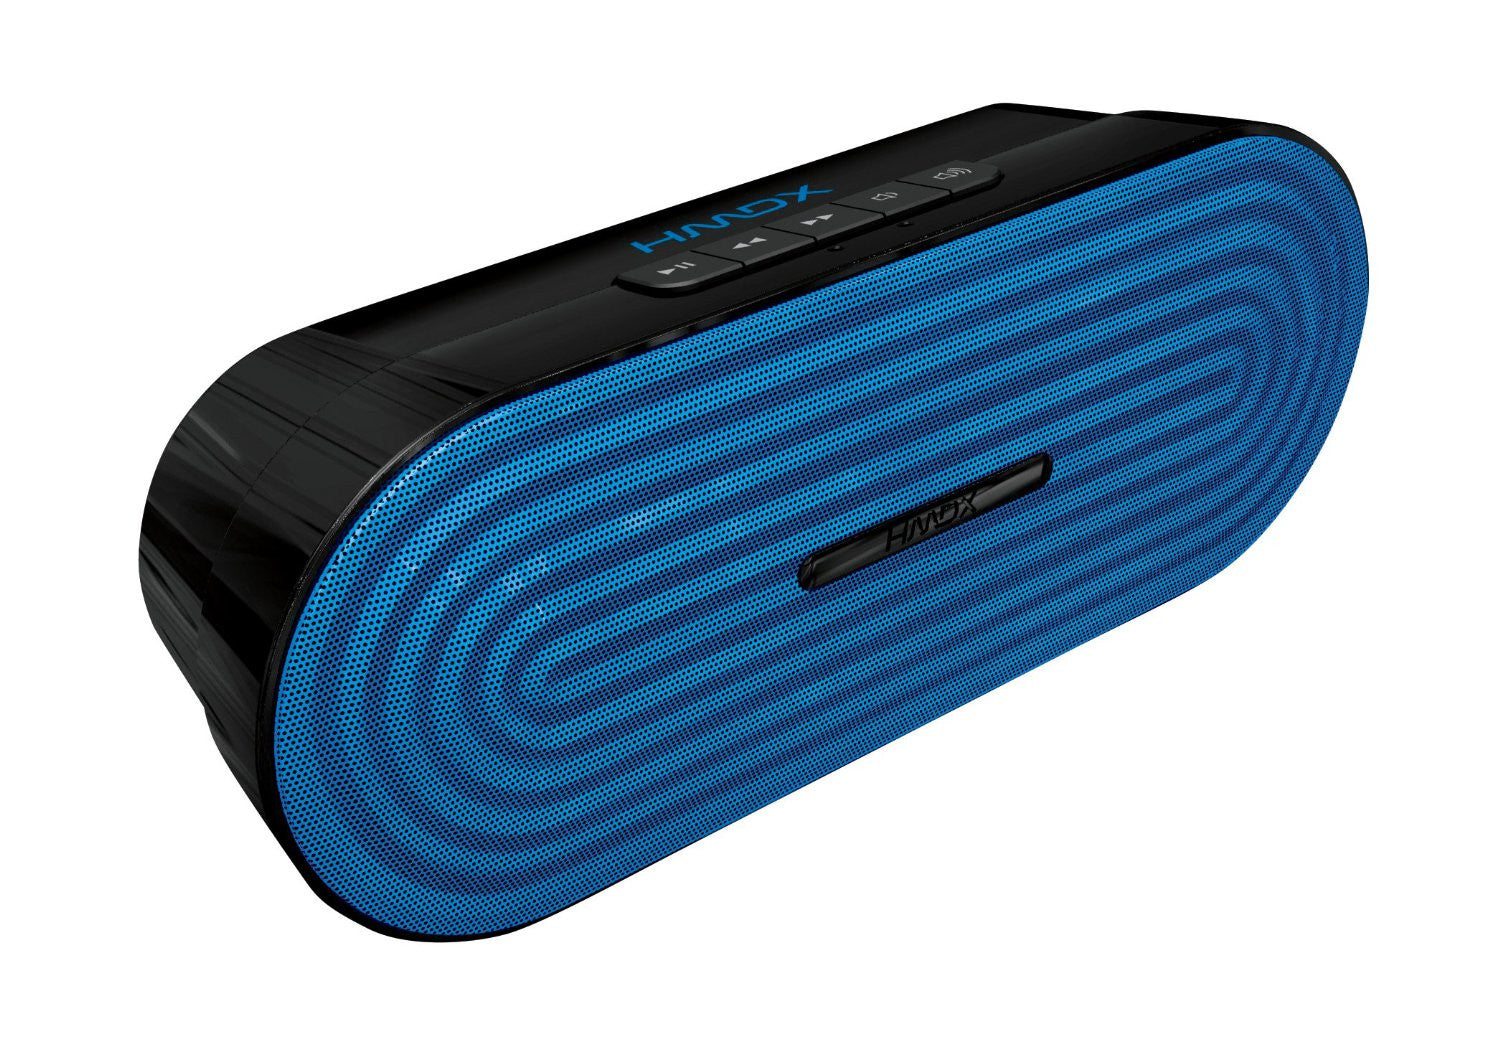 HMDX RAVE Wireless Rechargeable Portable Speaker